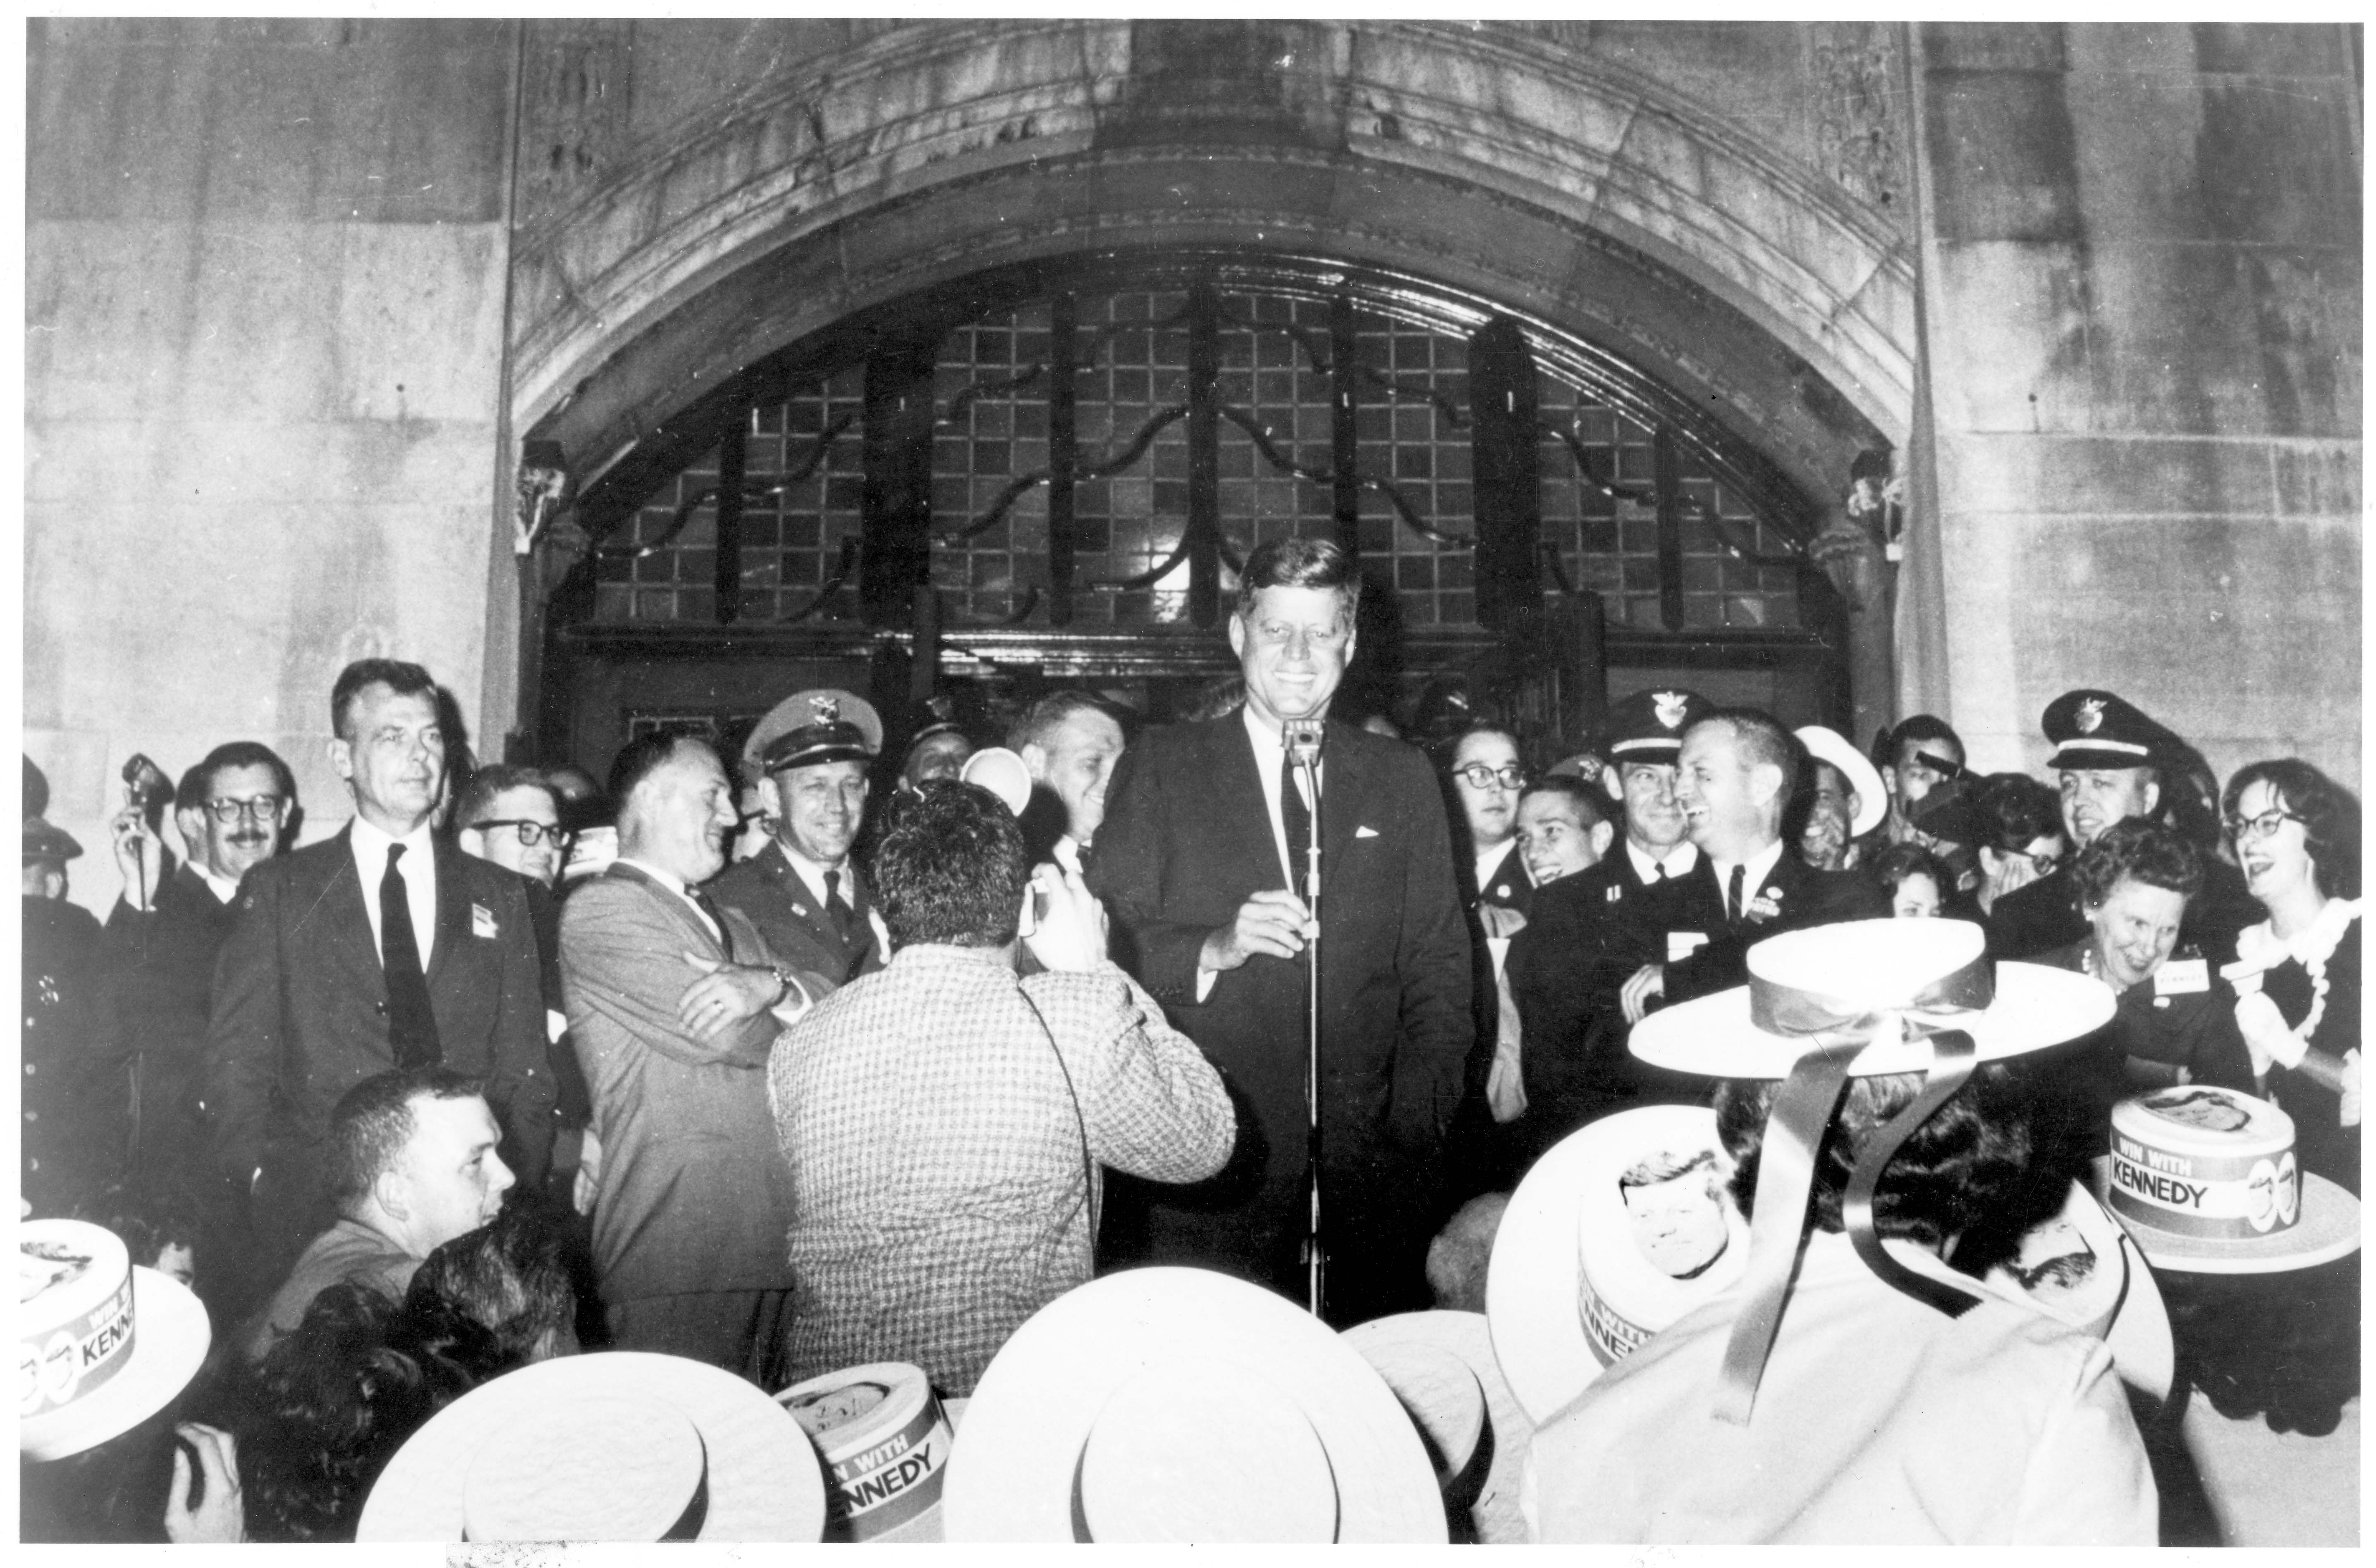 Presidential Candidate John F. Kennedy on the steps of the University of Michigan Student Union, October 1960 image